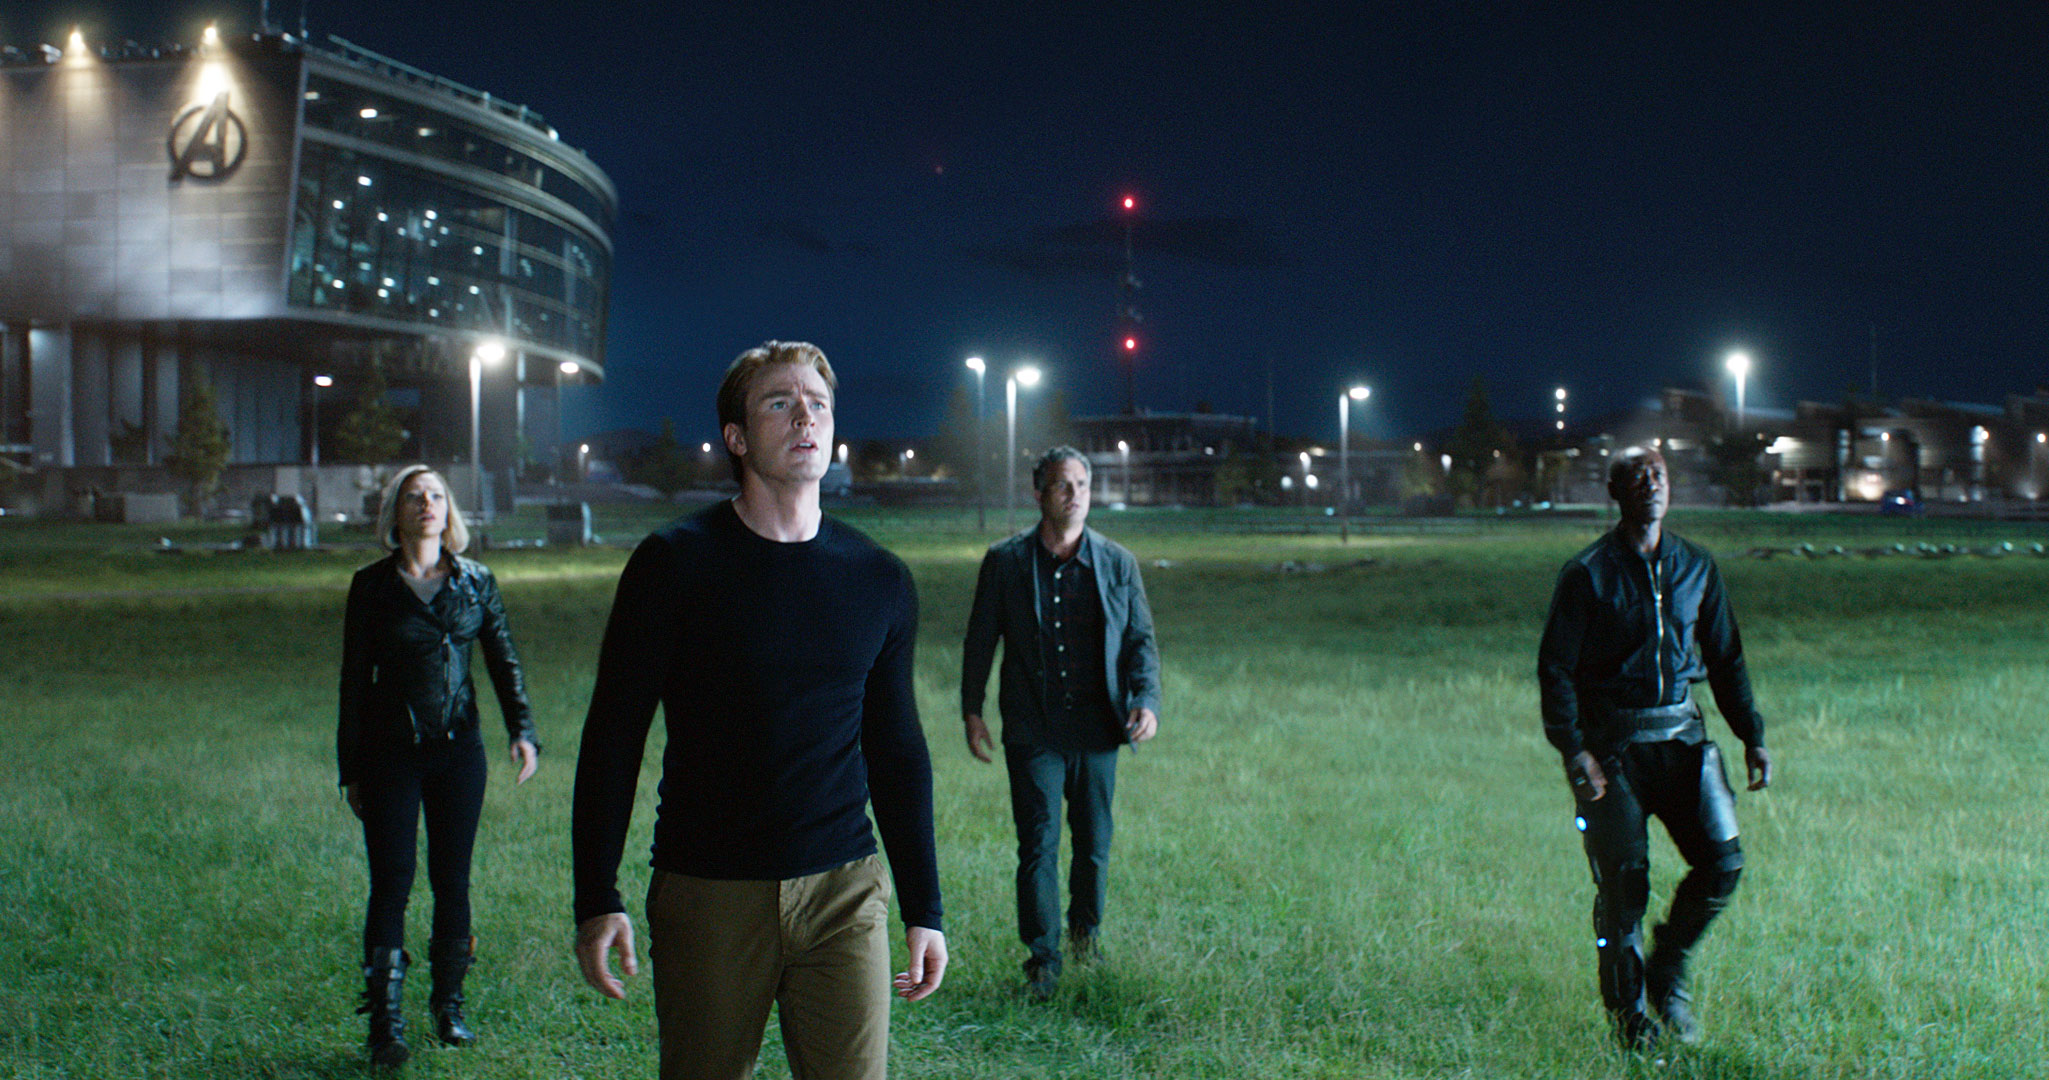 Avengers Endgame Movie Review Scarlett Johansson Chris Evans Mark Ruffalo Don Cheadle - Scarlett Johansson as Black Widow/Natasha Romanoff, Chris Evans as Captain America/Steve Rogers, Mark Ruffalo as Bruce Banner and Don Cheadle as War Machine/James Rhodes in 'Avengers: Endgame.